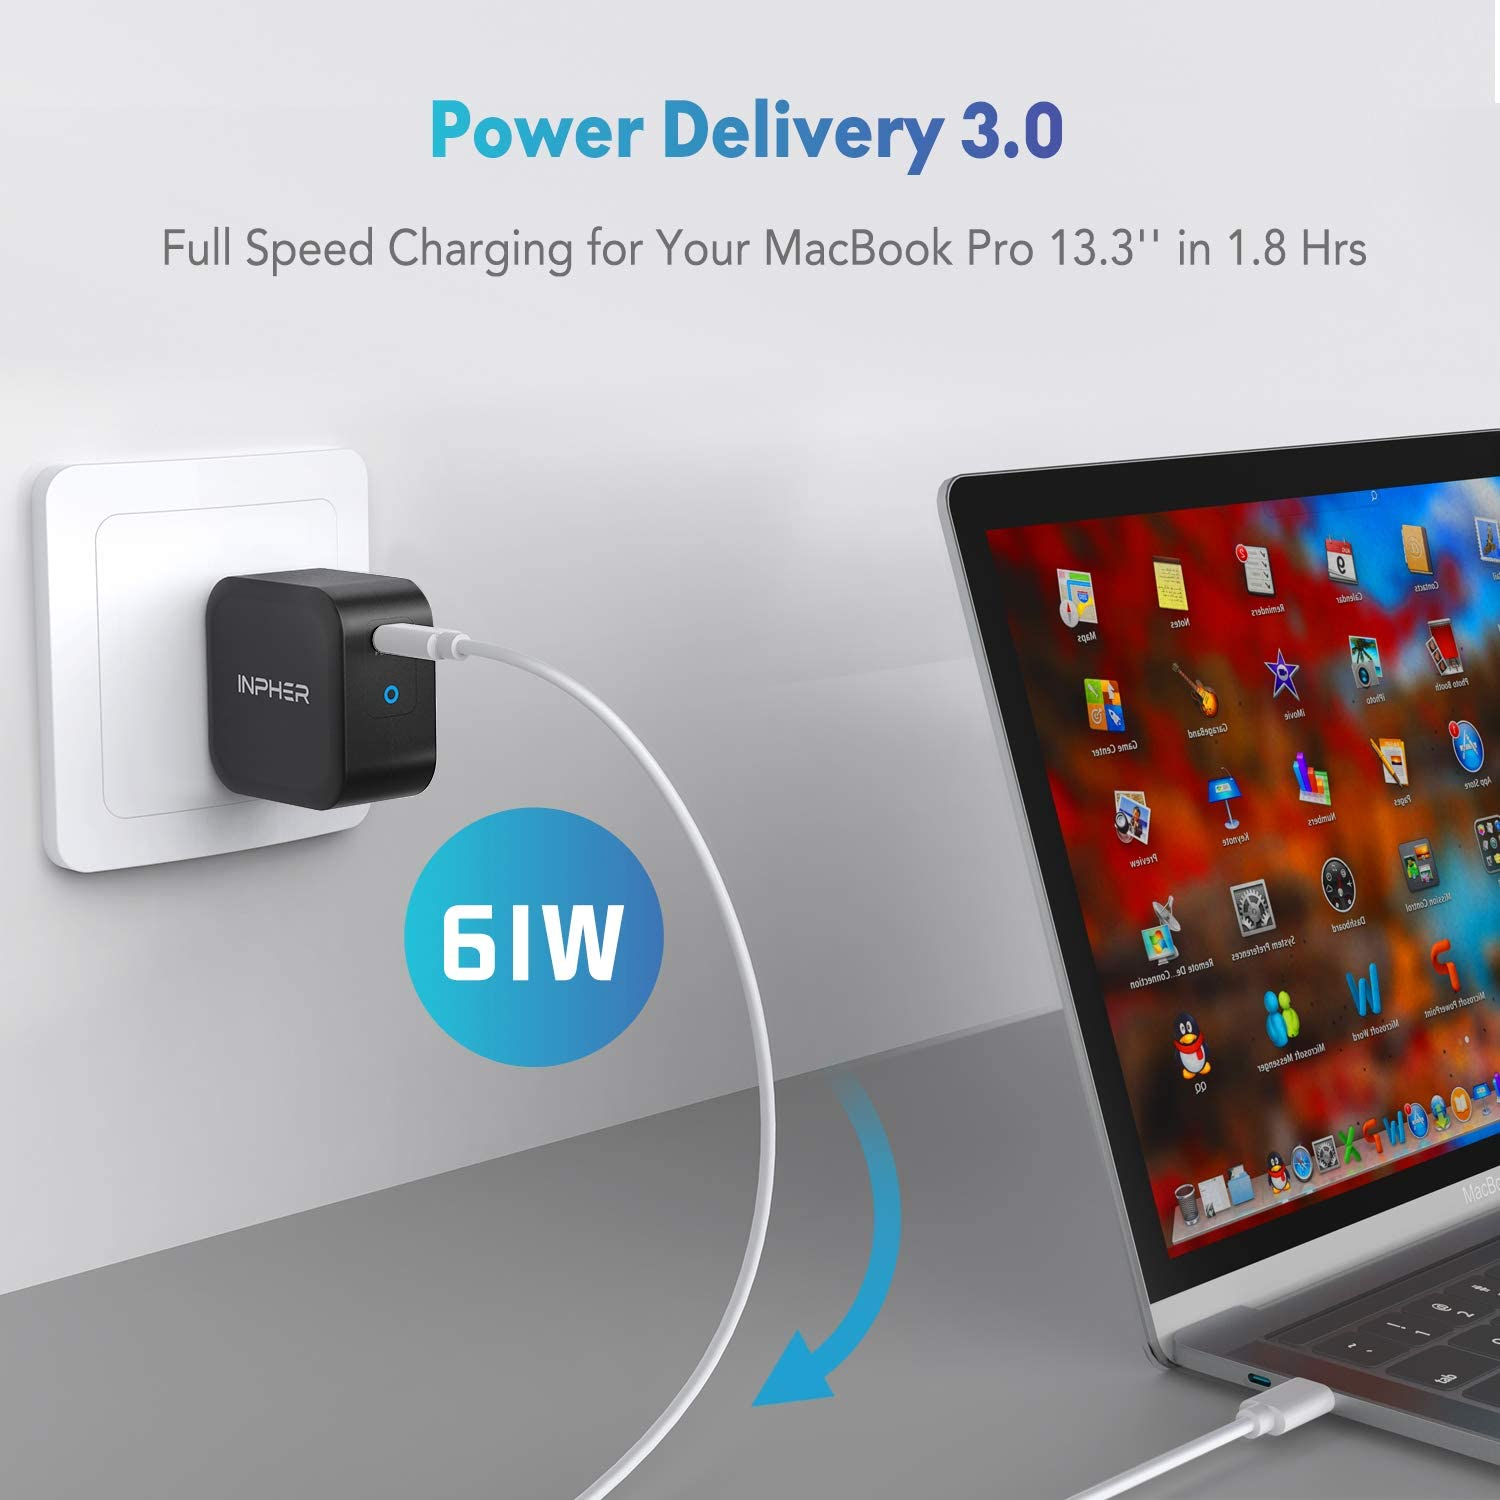 Black 61W USB C Wall Charger iPad Pro 2018 iPhone Xs Max//XR//X and More GaN Tech Inpher PD 3.0 Ultra Compact Type C Fast Charging Power Delivery Foldable Adapter Compatible with MacBook Pro//Air